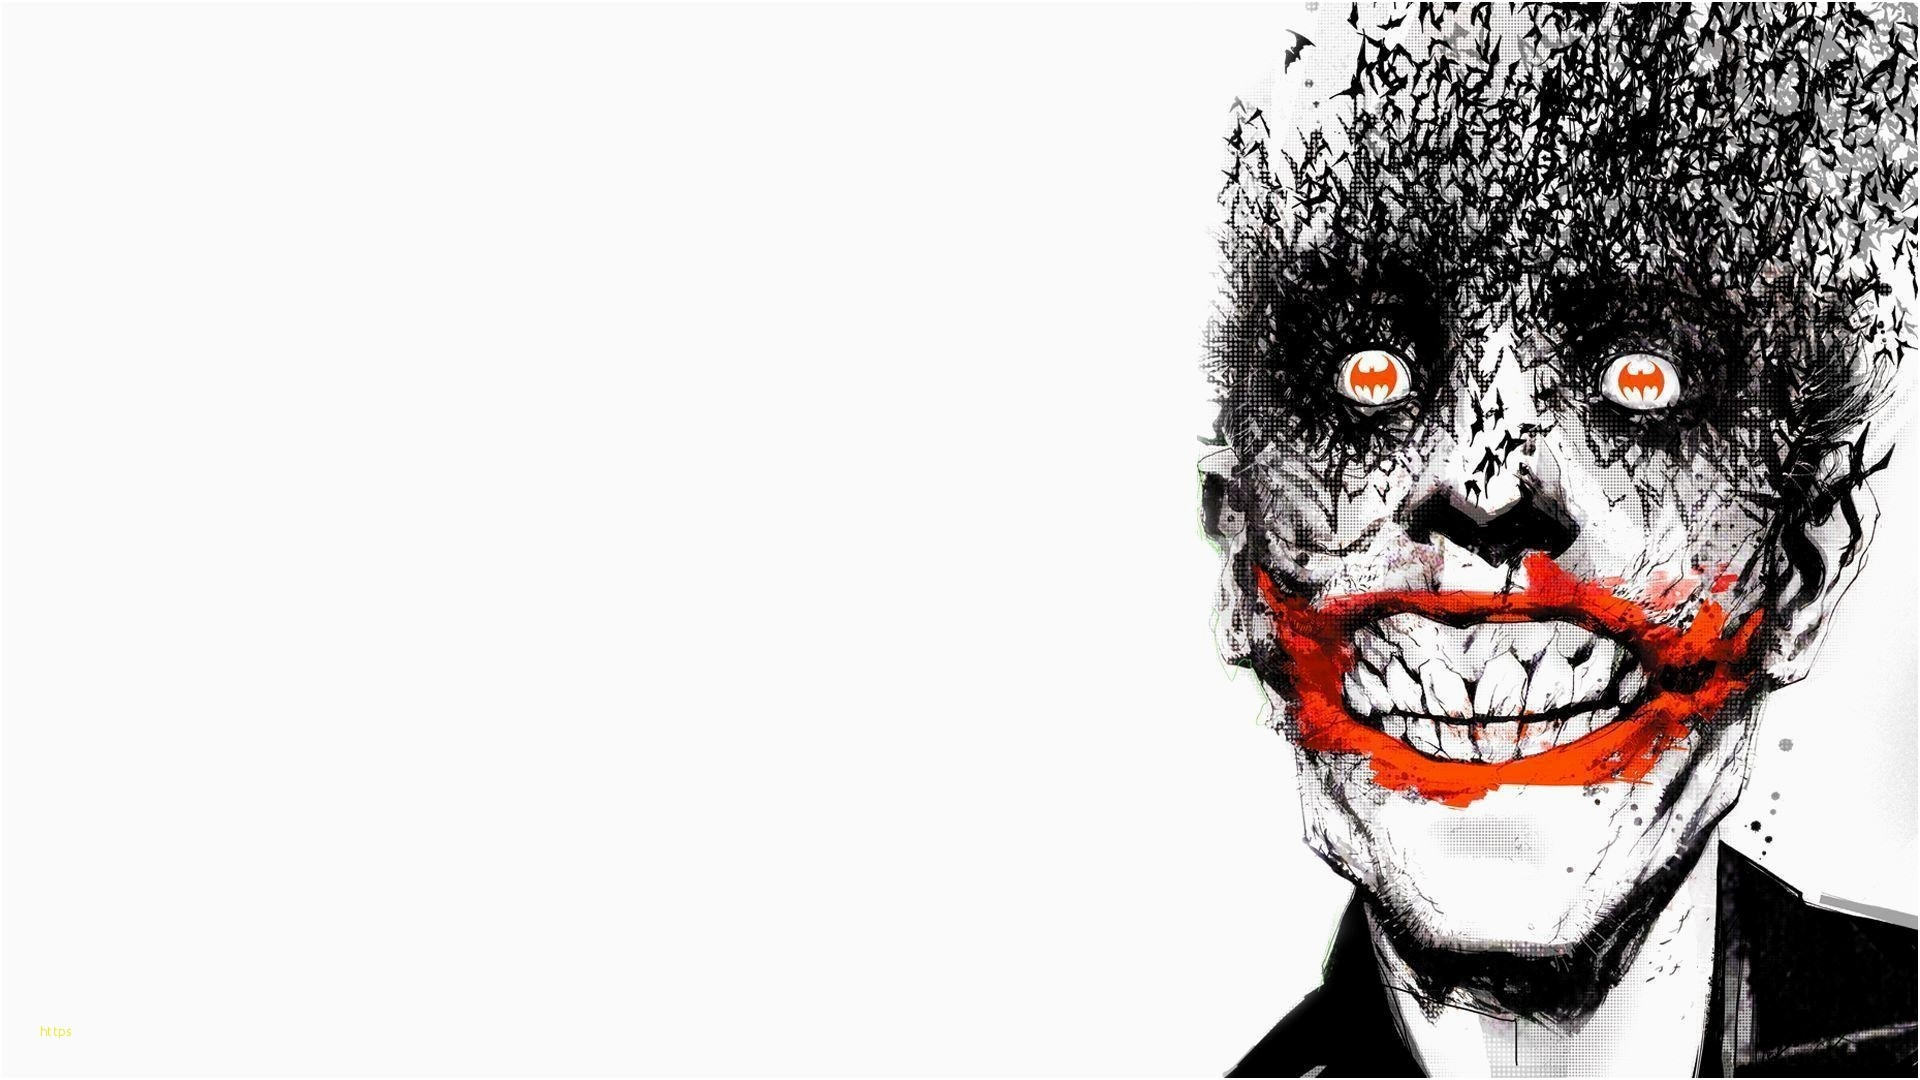 Res: 1920x1080, Joker Wallpaper Lovely Scary Joker Wallpapers Wallpaper Cave